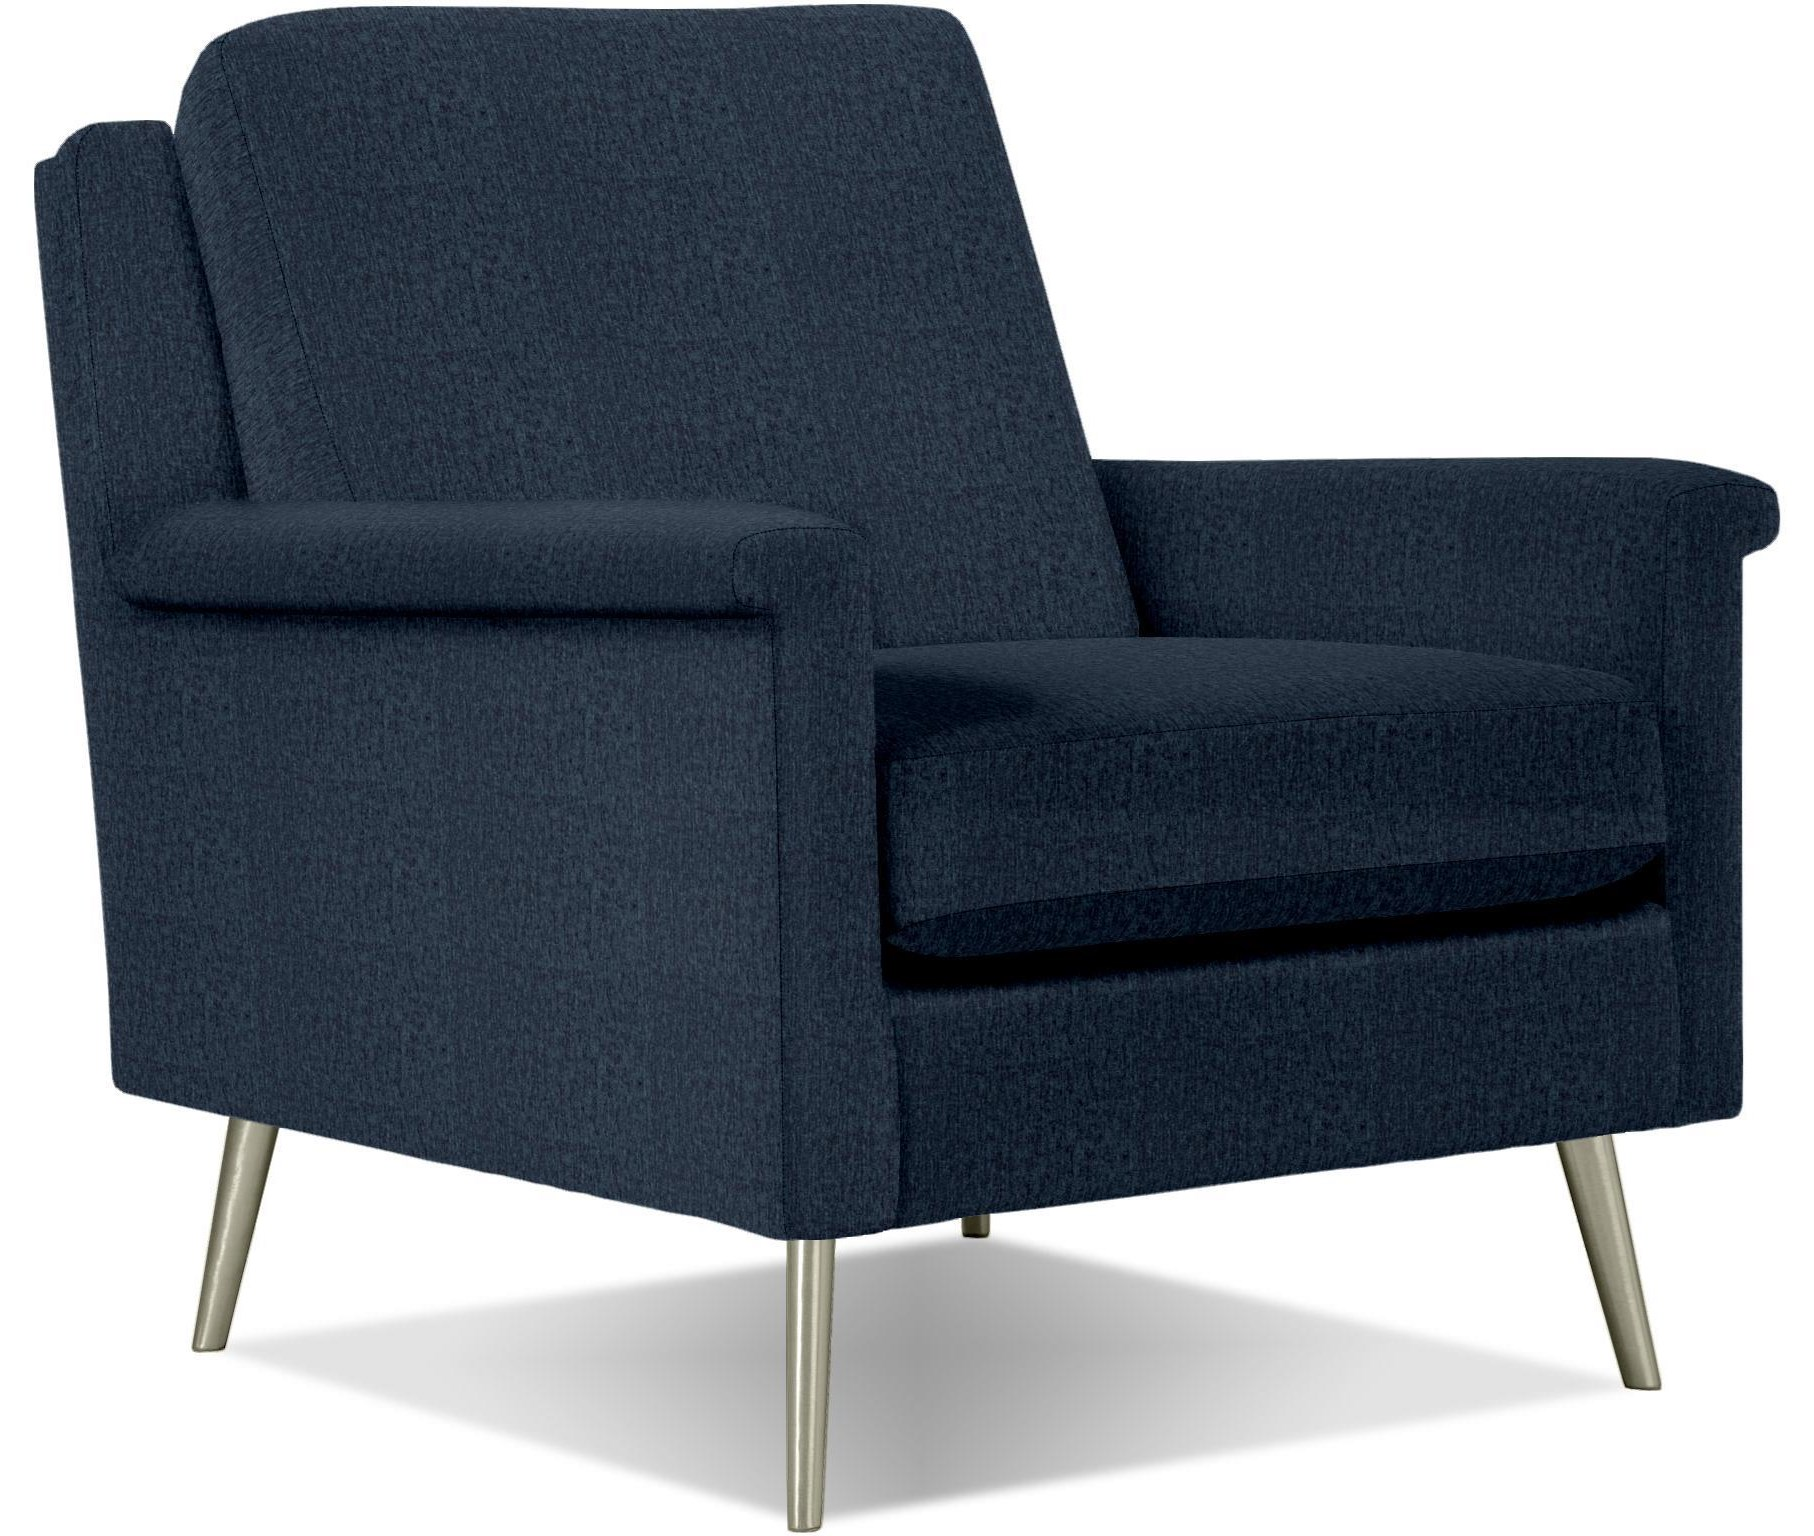 Chambers Chair by Best Home Furnishings at Crowley Furniture & Mattress